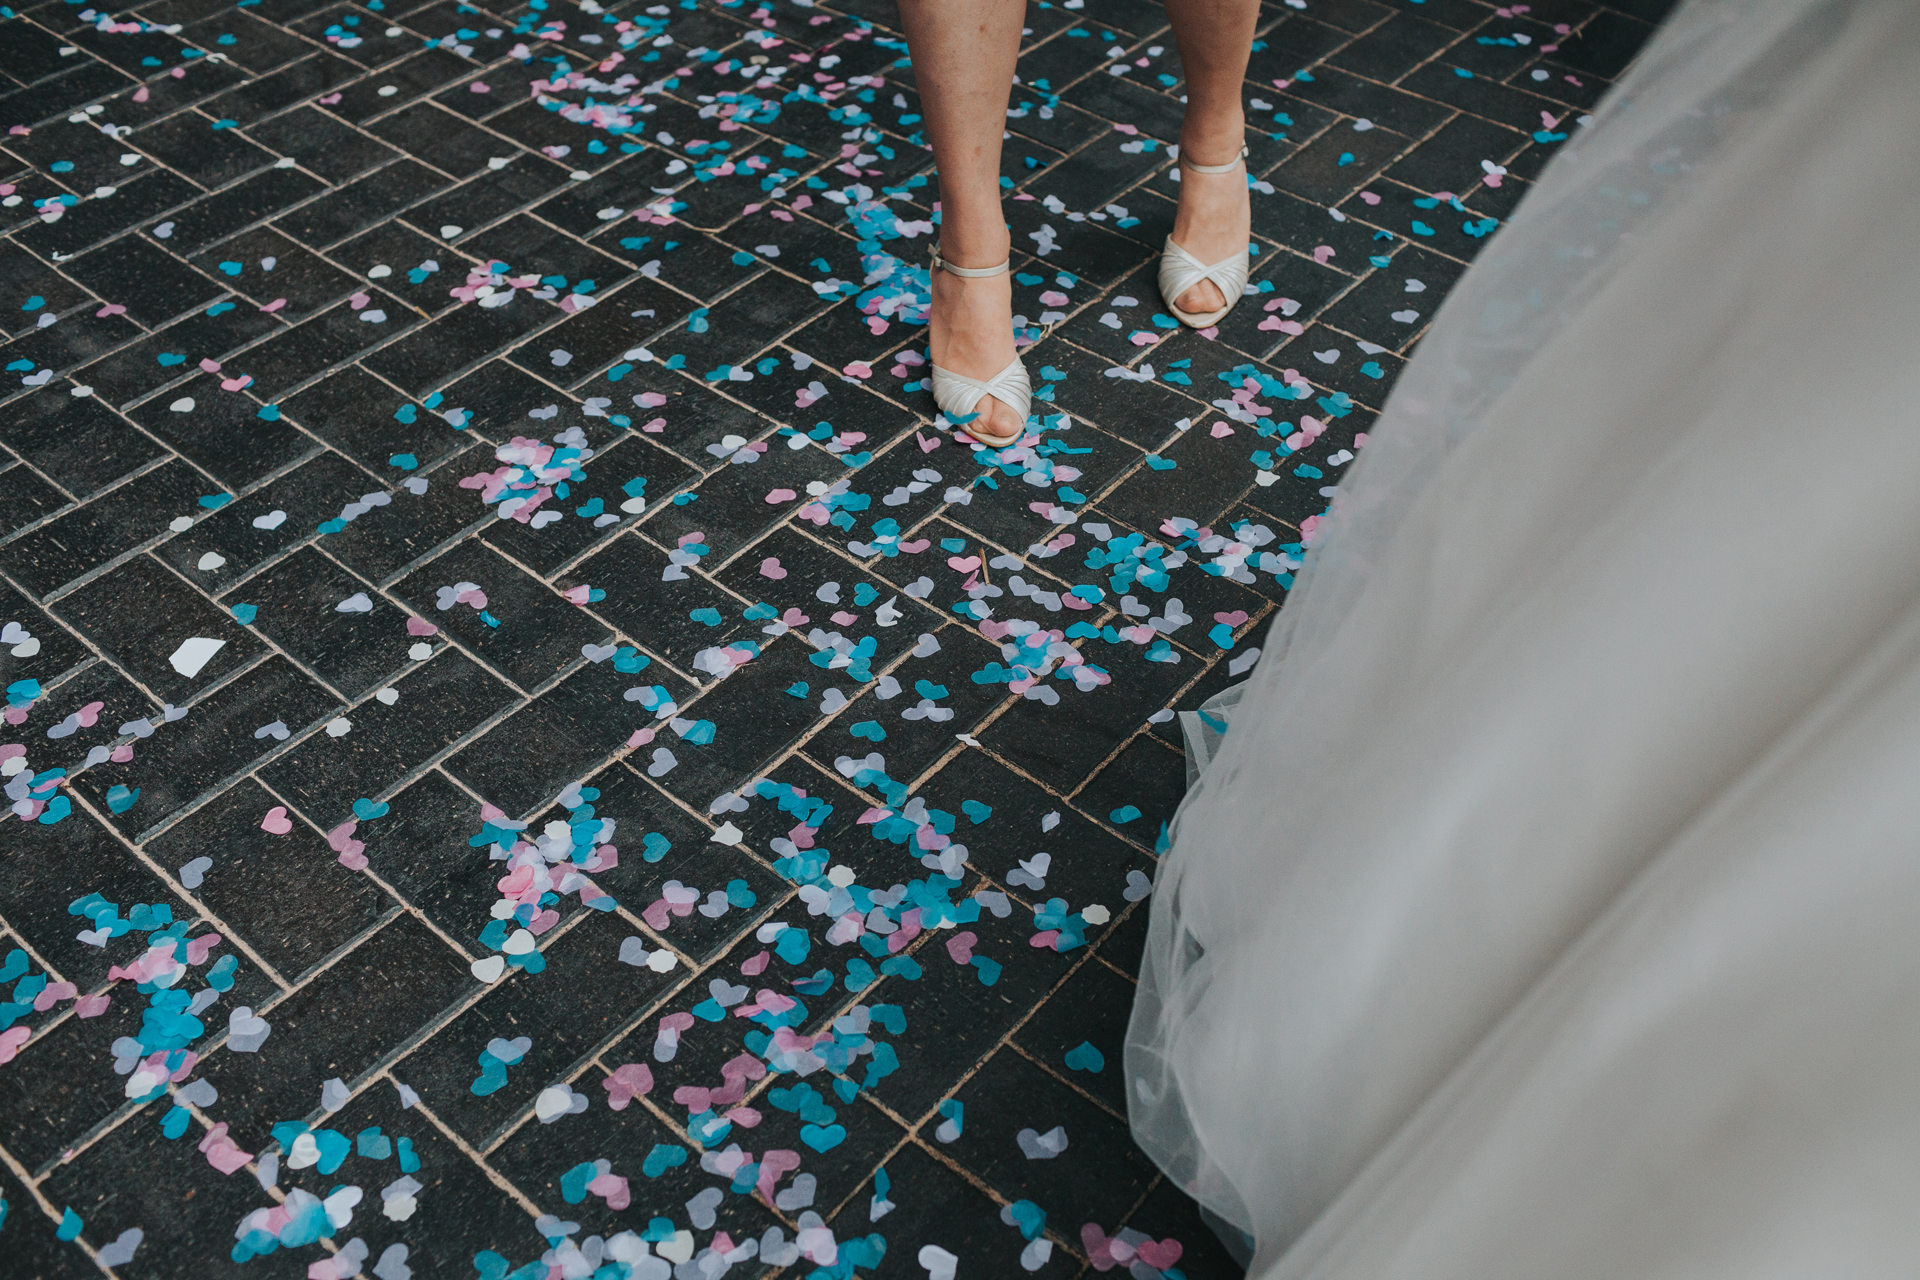 The floor is covered in pink and teal confetti.